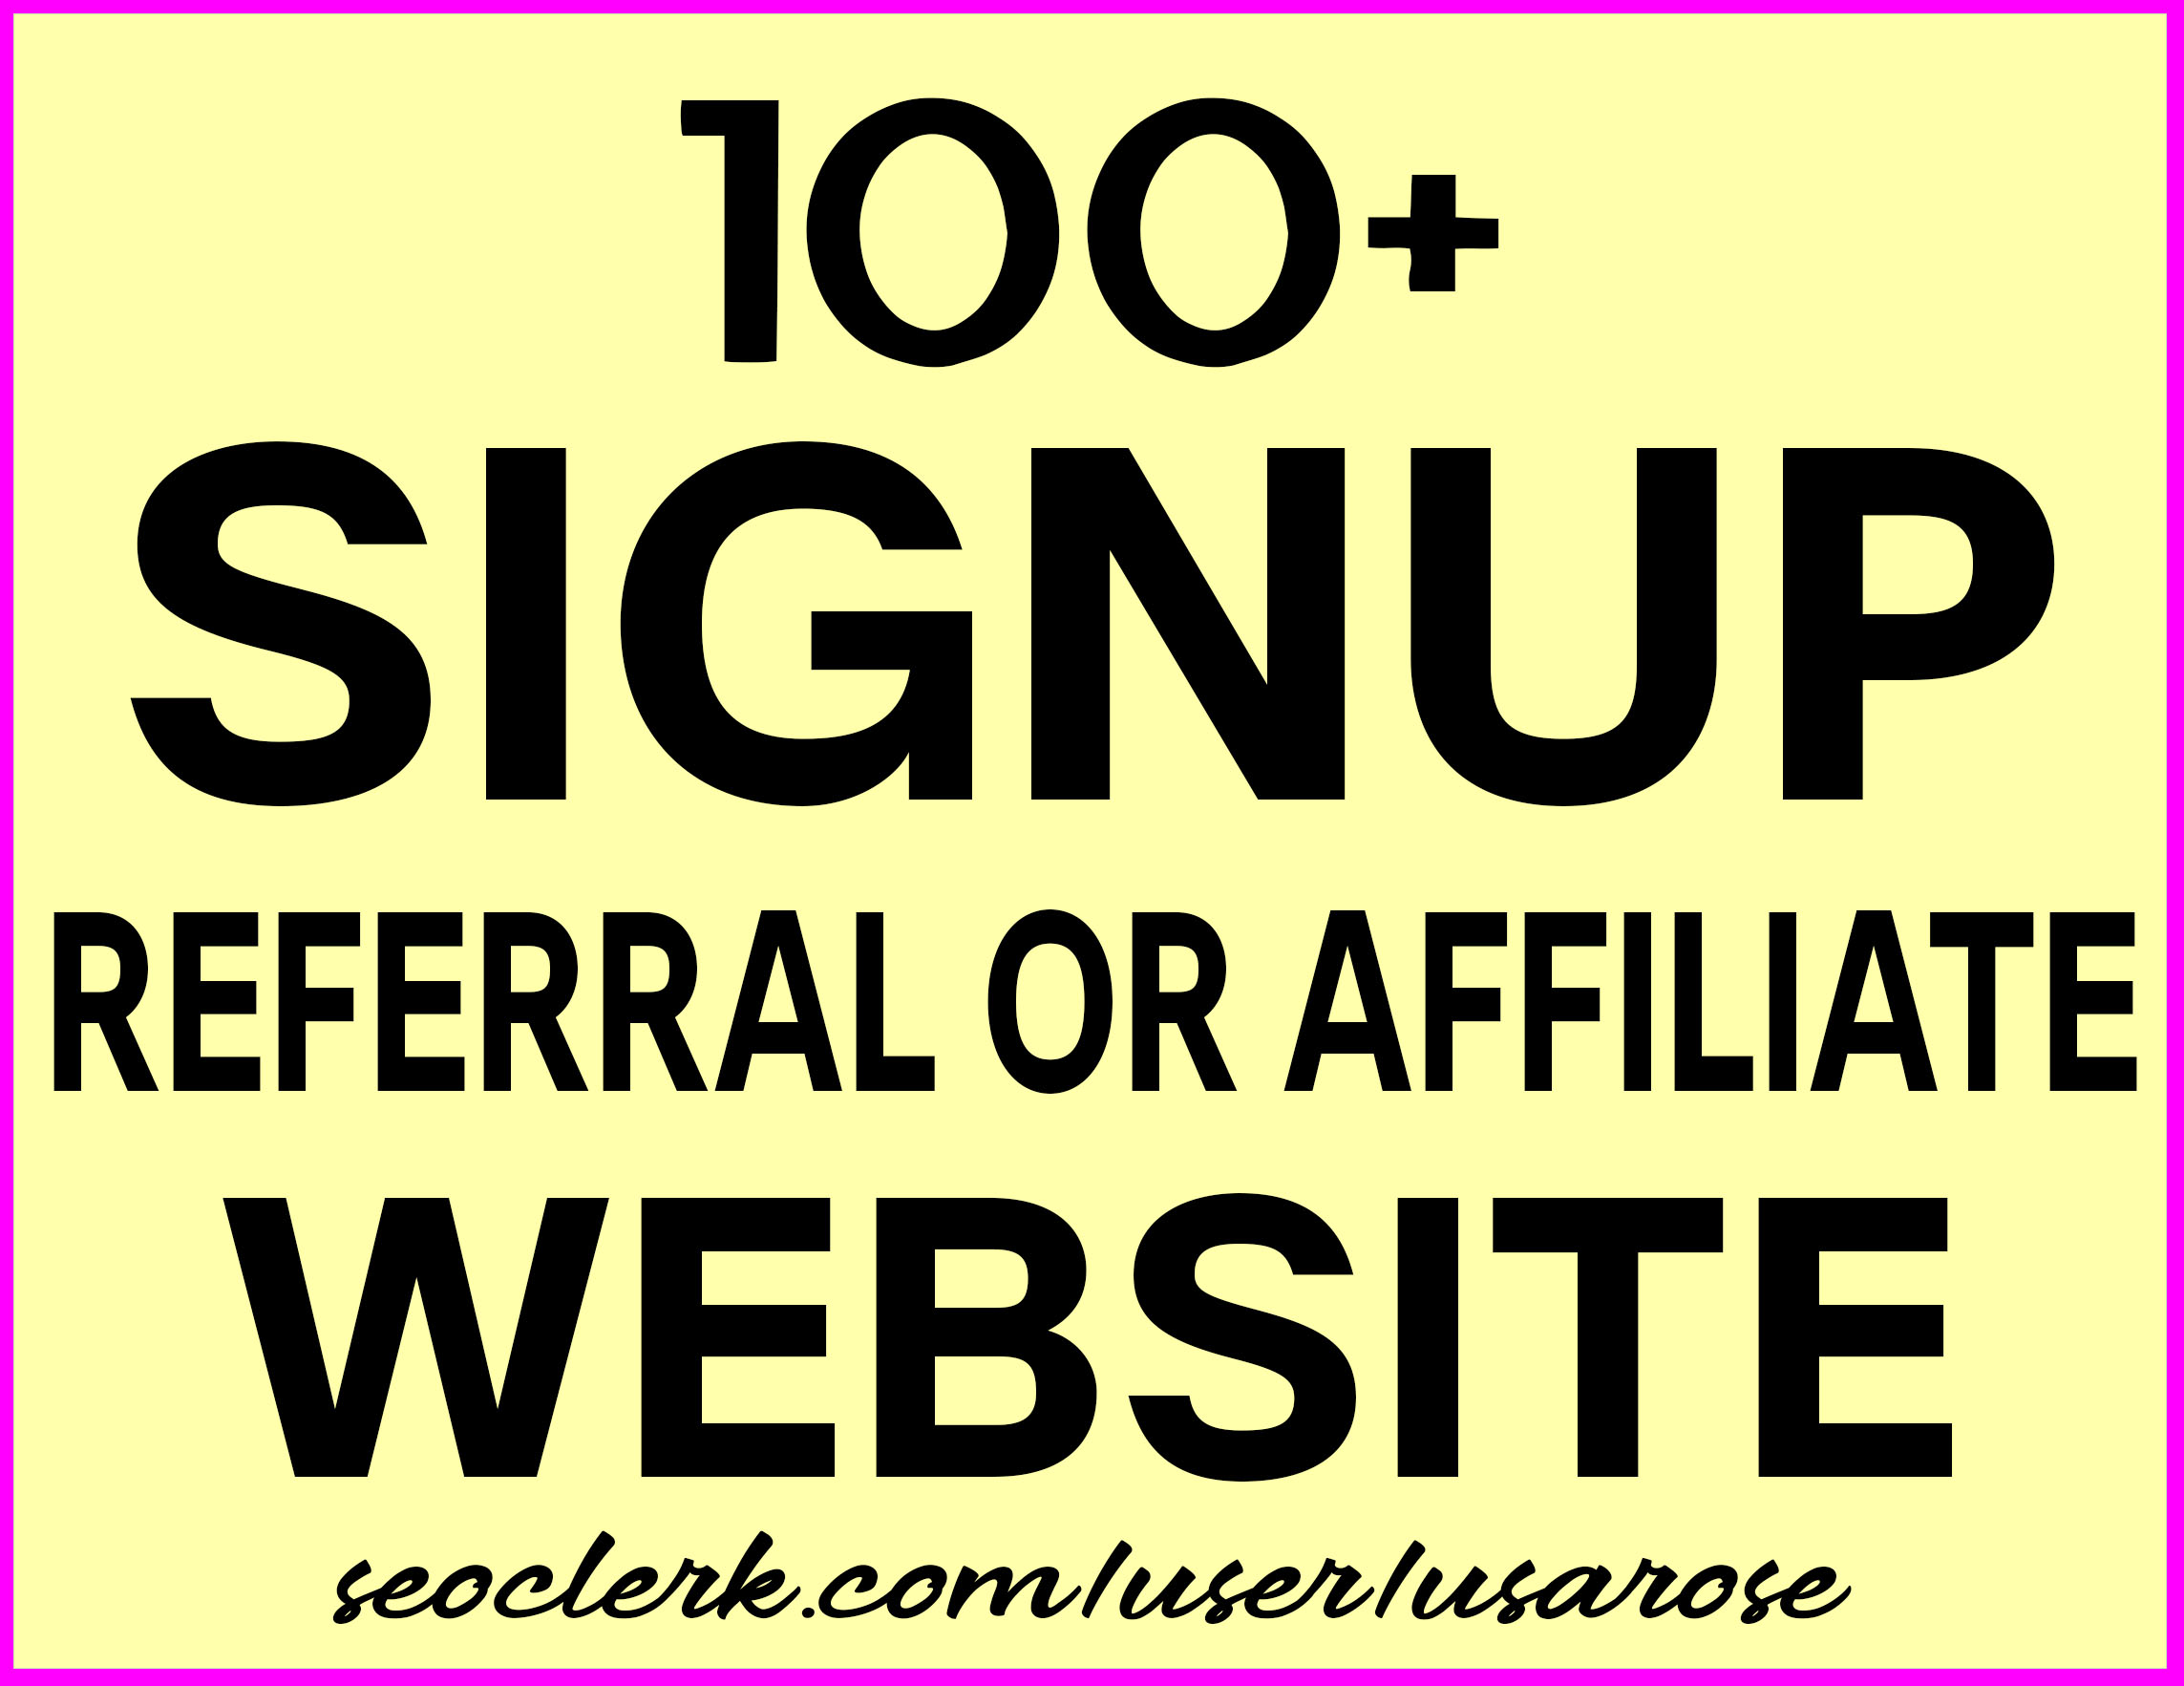 Buy 100+ Signup For Your Referral or Affiliate Website